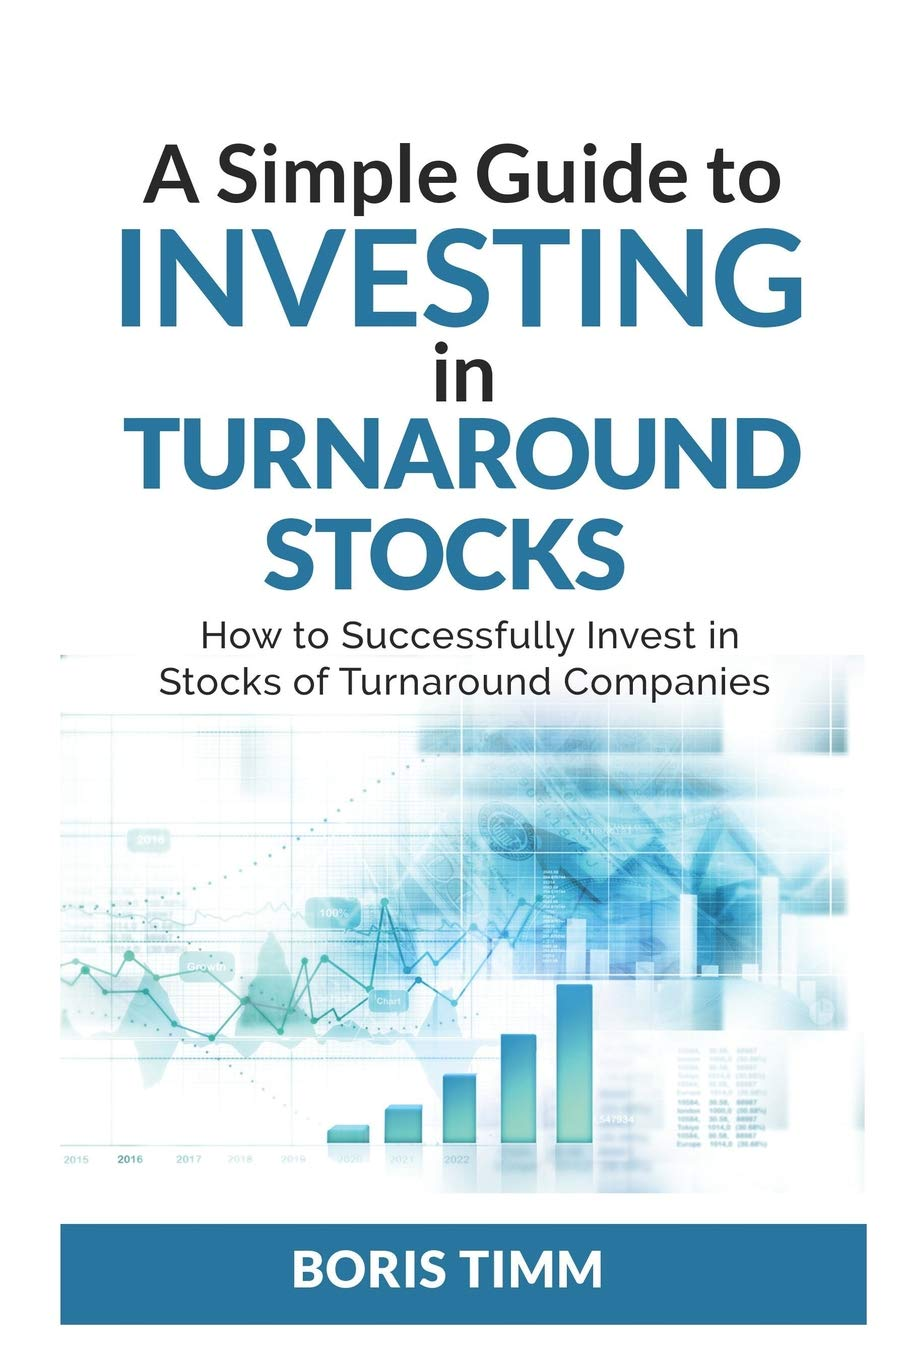 A Simple Guide to Investing in Turn around Stocks